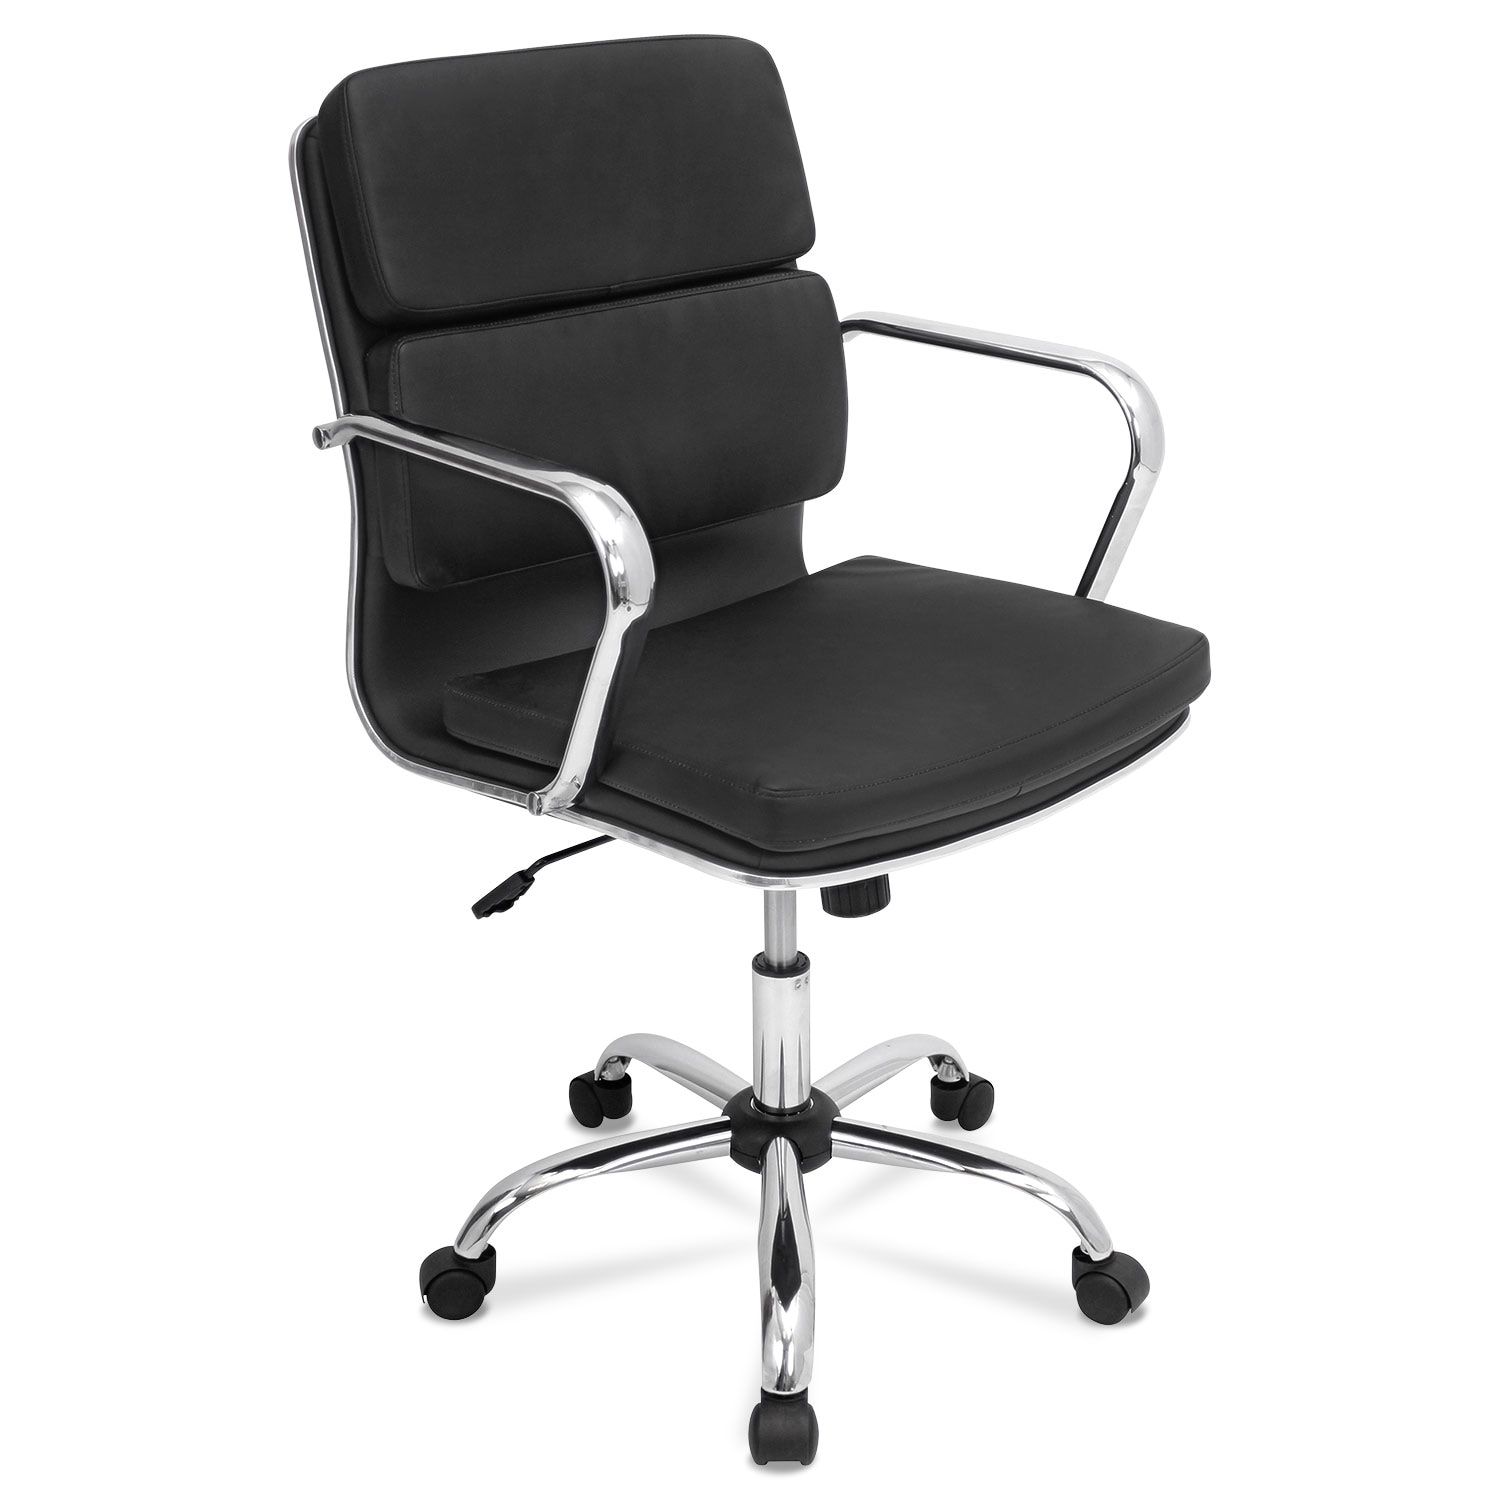 Oscar Office Chair - Black